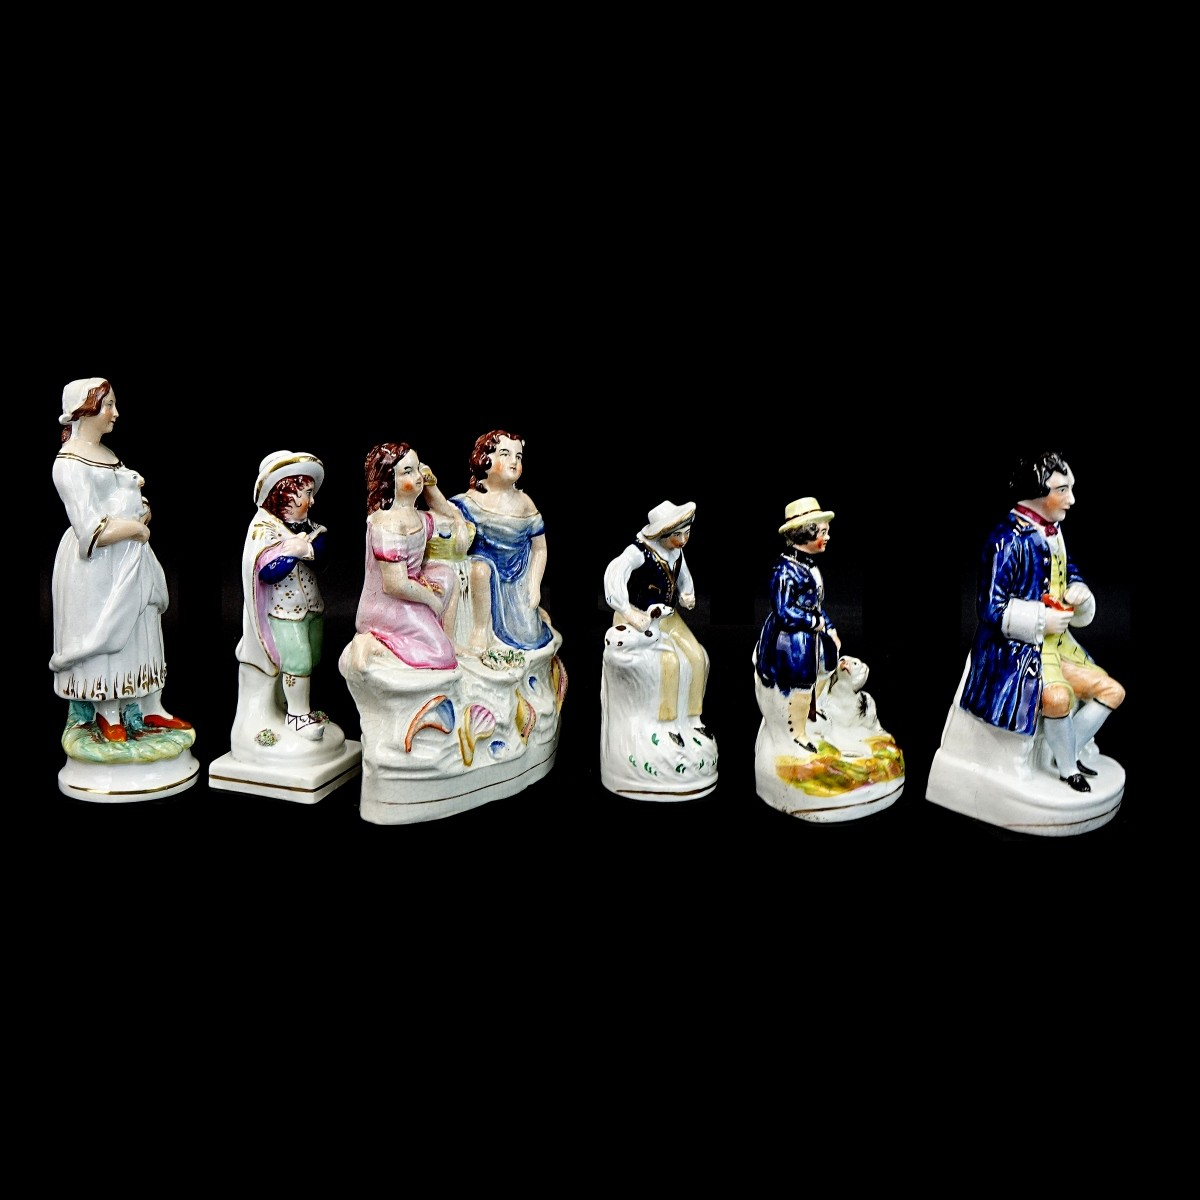 Six (6) Staffordshire Figurines